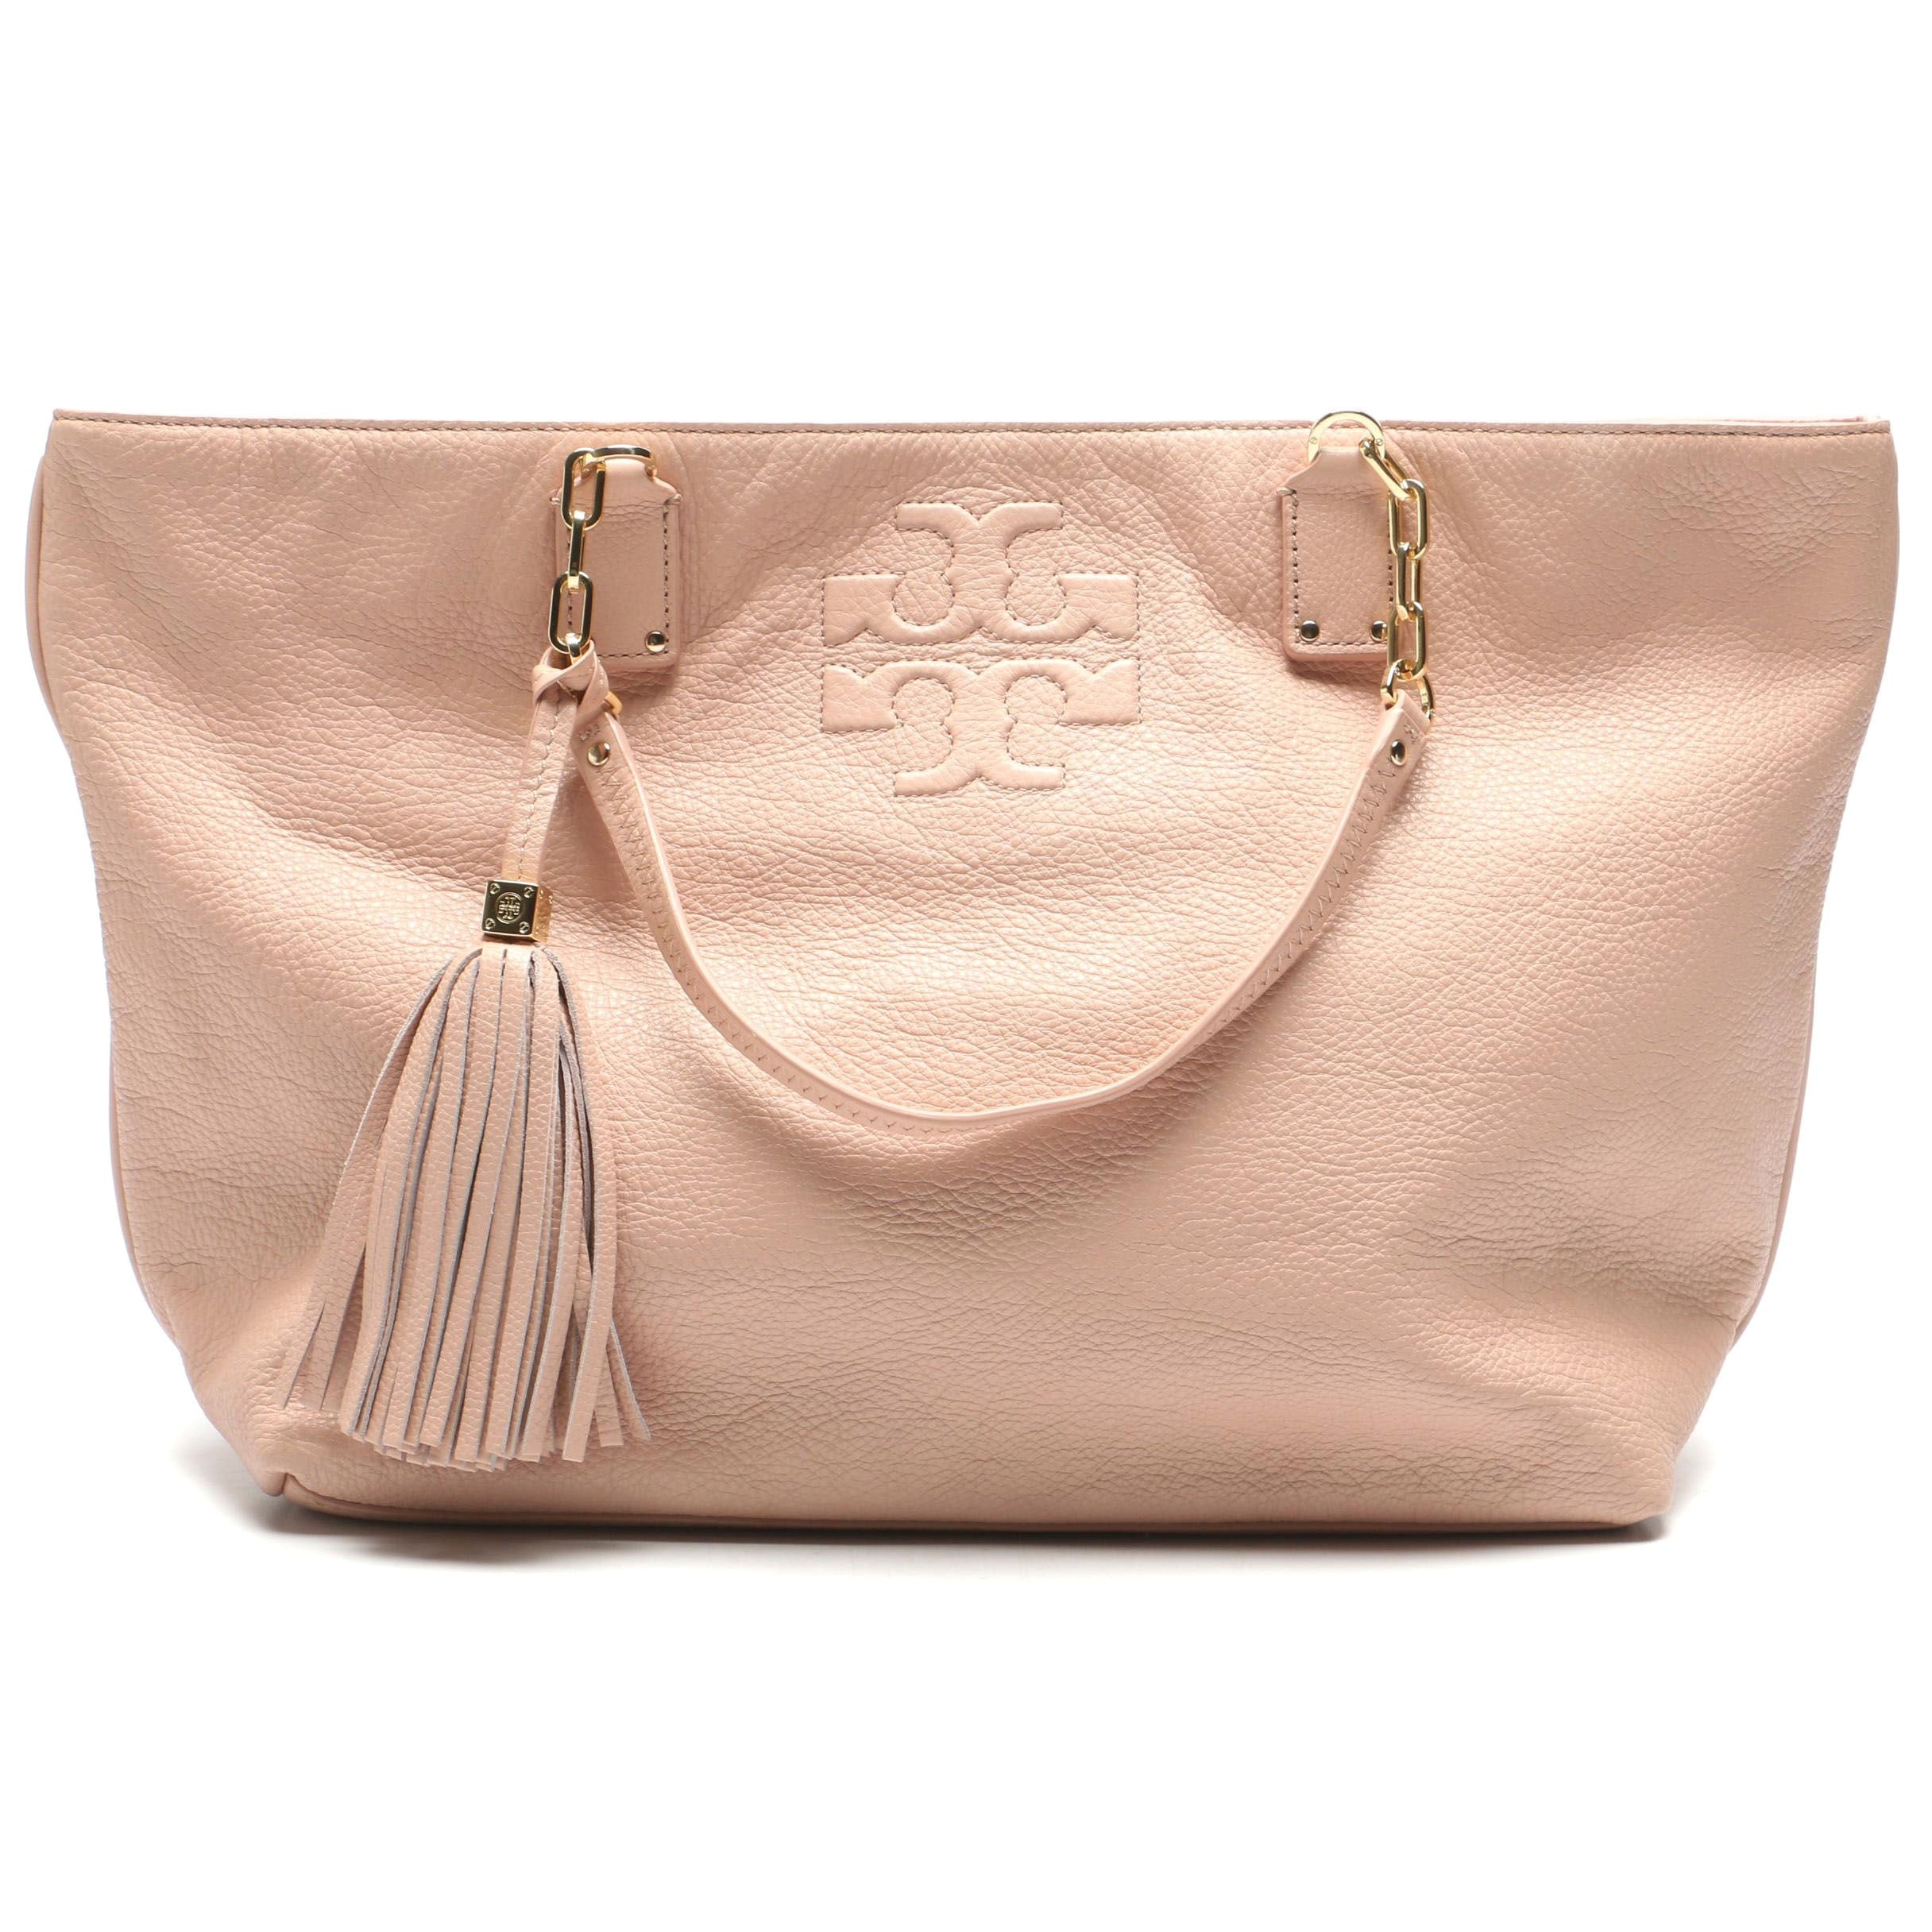 Tory Burch Light Blush Pink Grained Leather Tote Bag